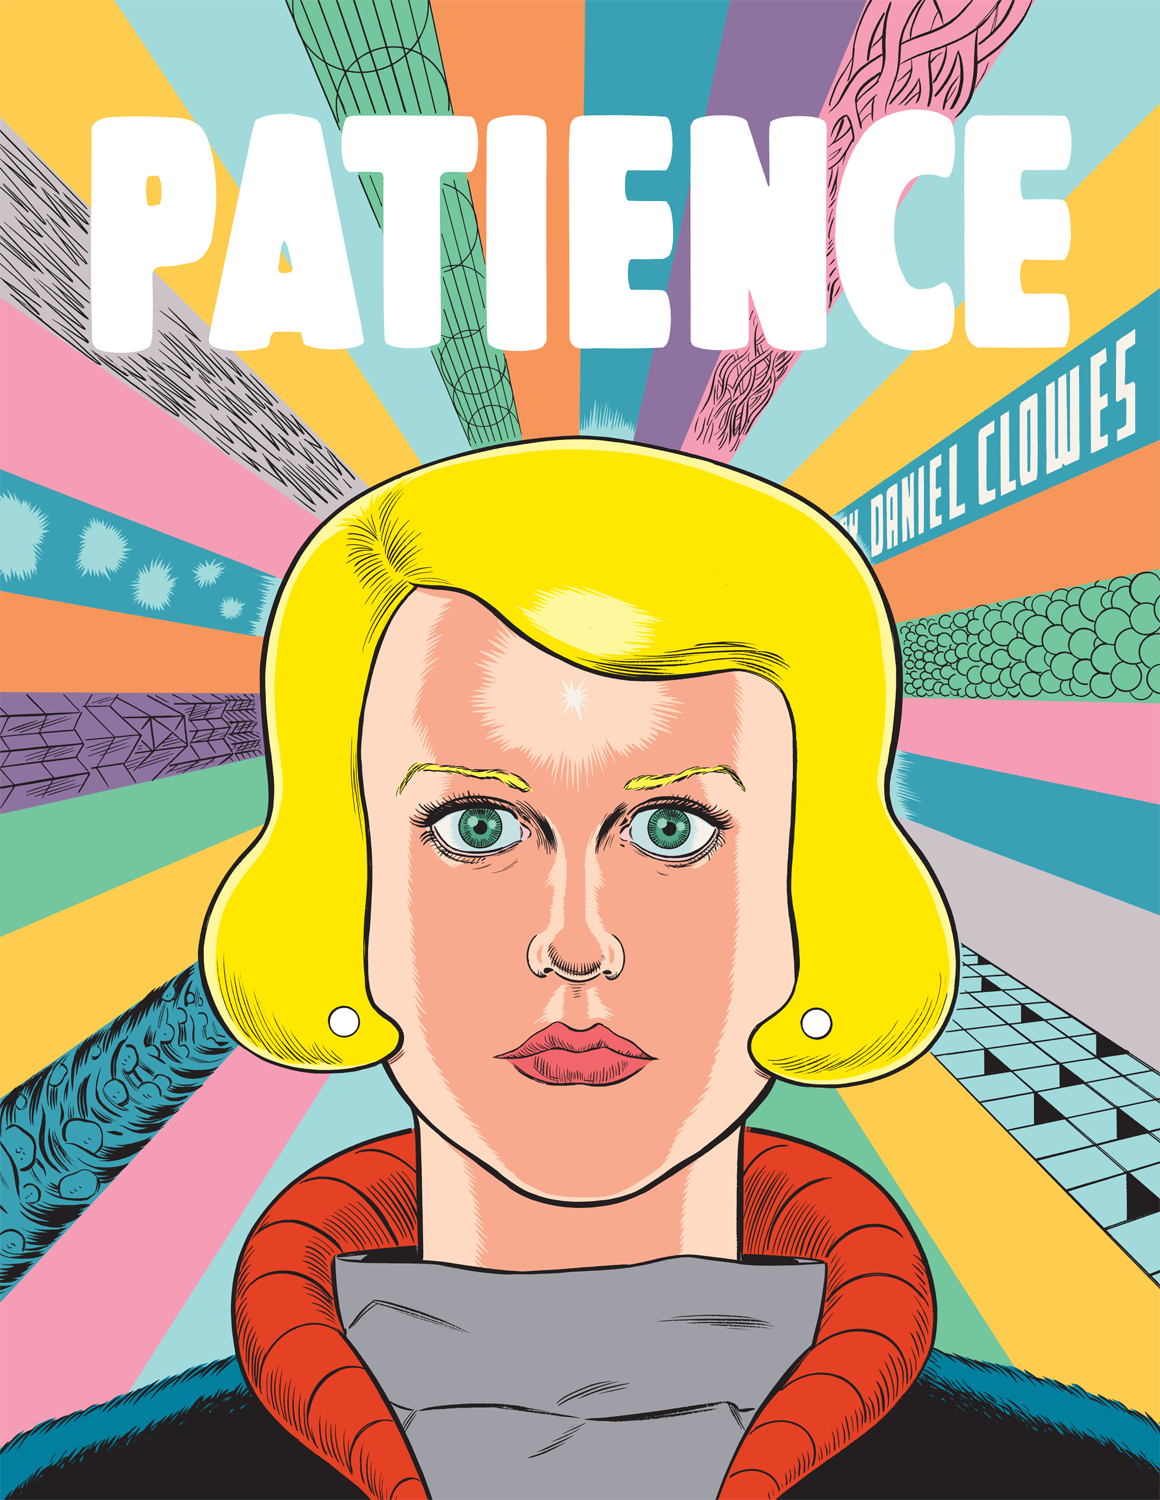 Patience Daniel Clowes Graphic novel Gift guide